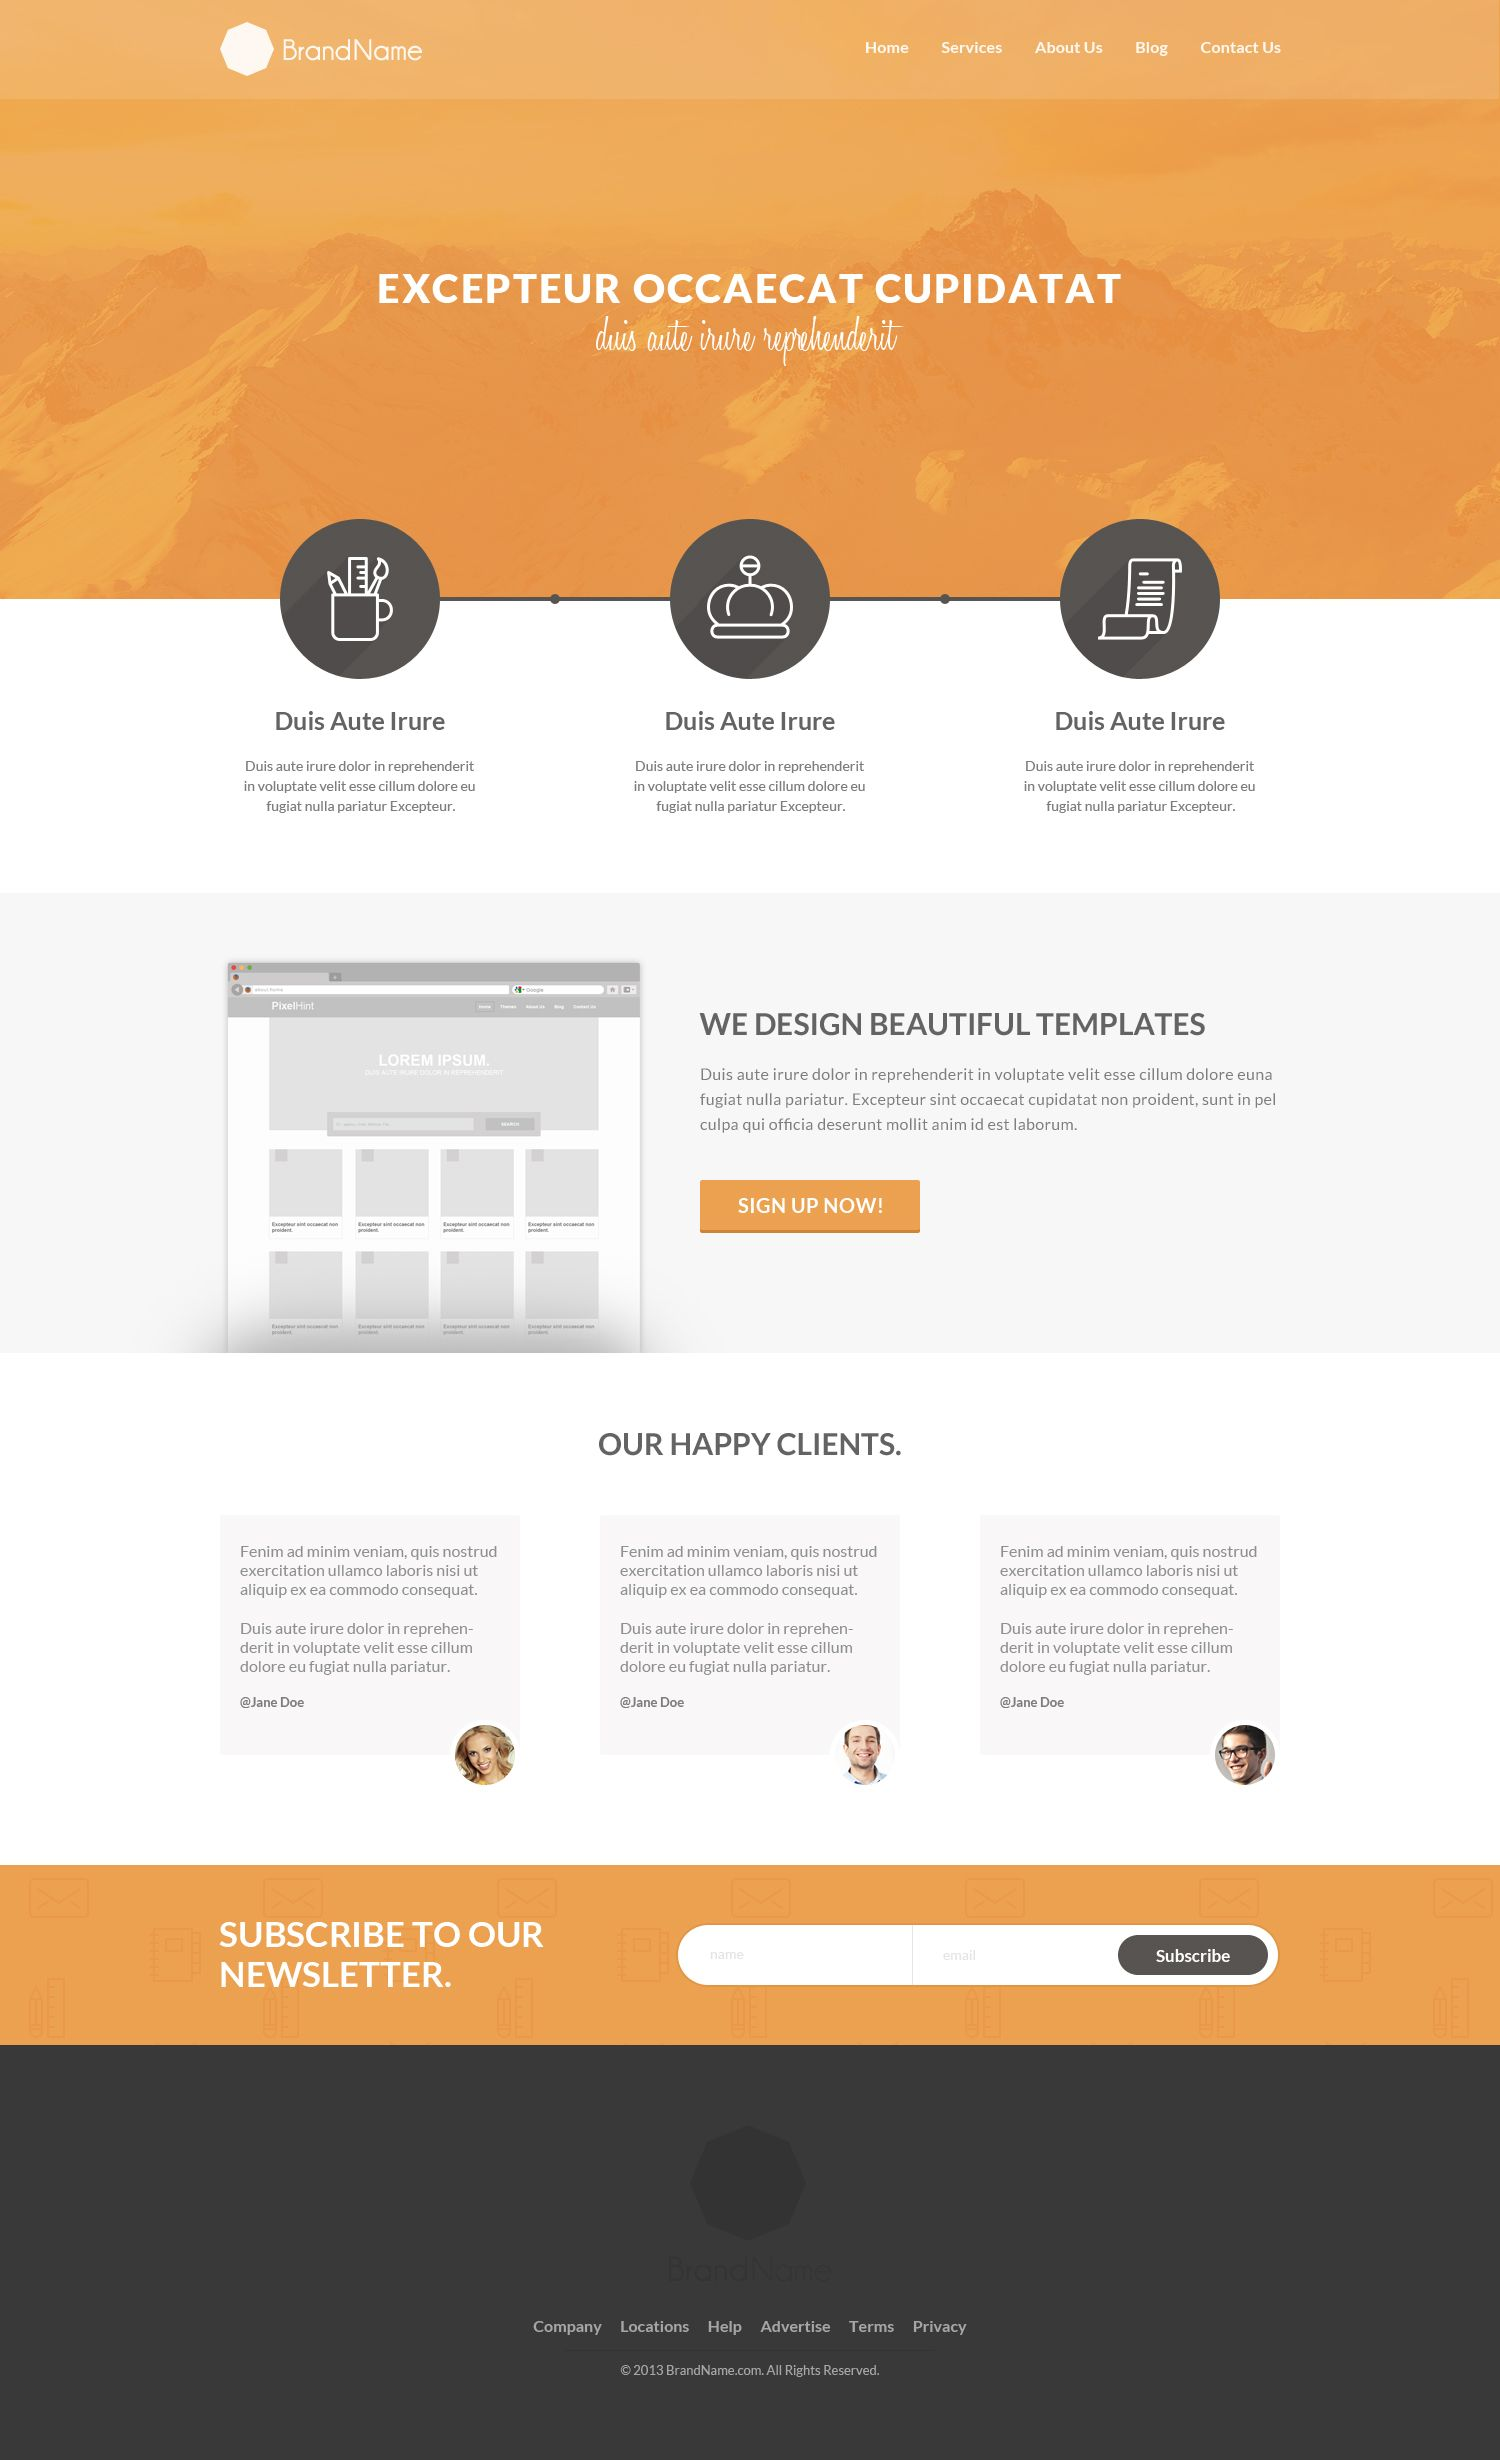 Web design tutorial learn how to design a website from scratch web design tutorial learn how to design a website from scratch in photoshop baditri Image collections